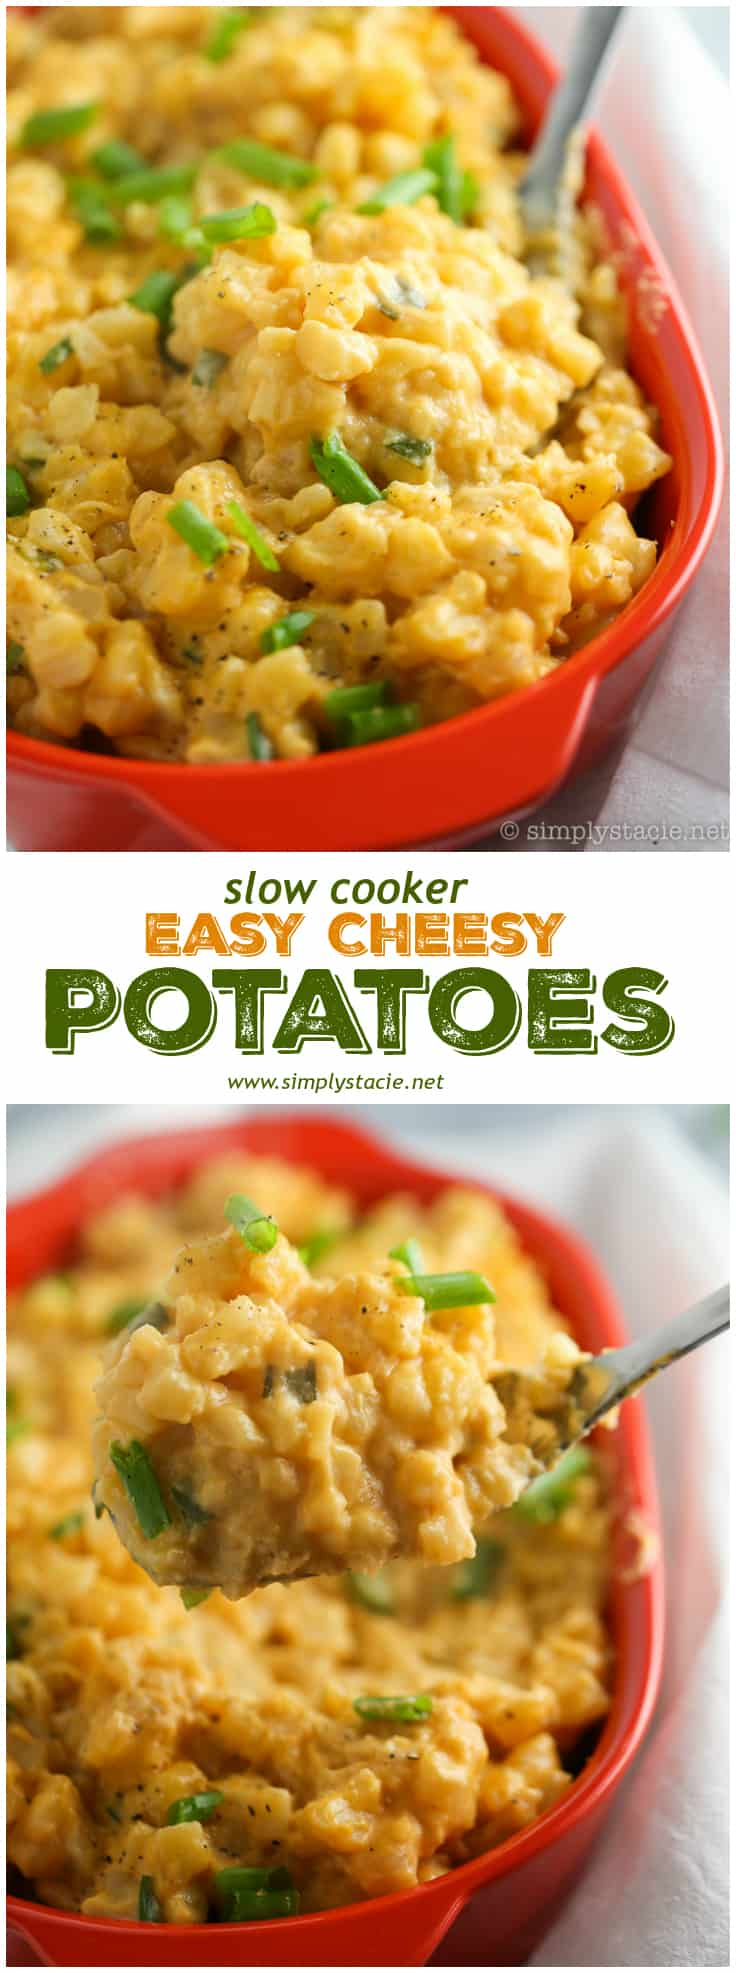 Slow Cooker Cheesy Potatoes is a cheesy and tasty side dish to pair with your weeknight dinner. Frozen hashbrowns, canned cheese soup and a few other ingredients are all you need for this easy potato recipe.